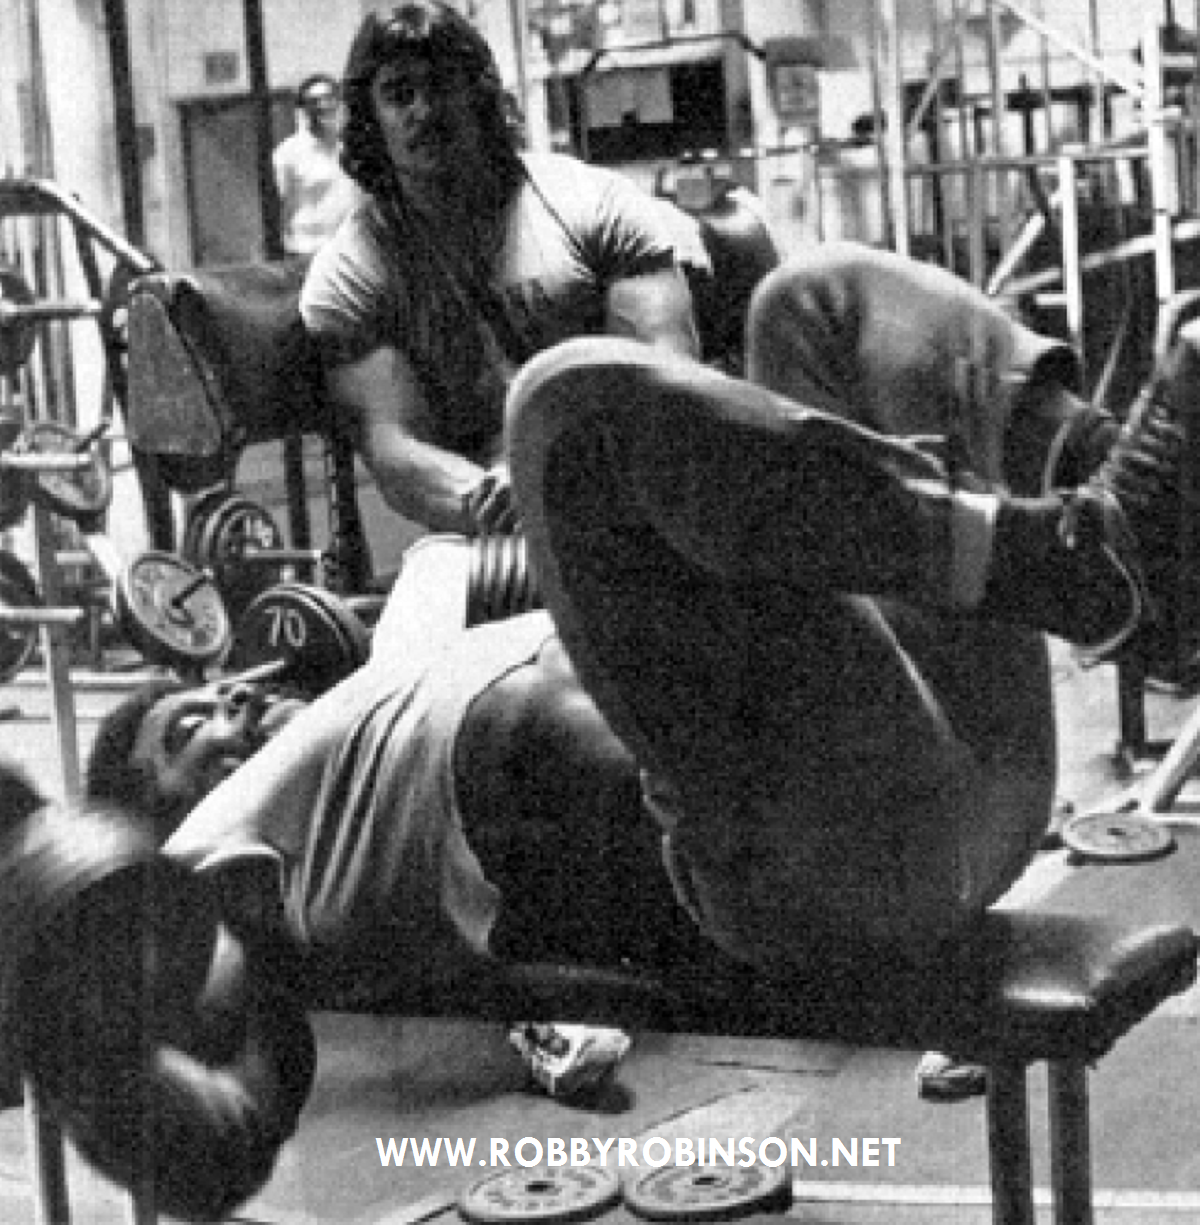 Robby Robinson and Denny Gable - flat bench dumbbel flyes ● www.robbyrobinson.net//anabolic-pack.php ●